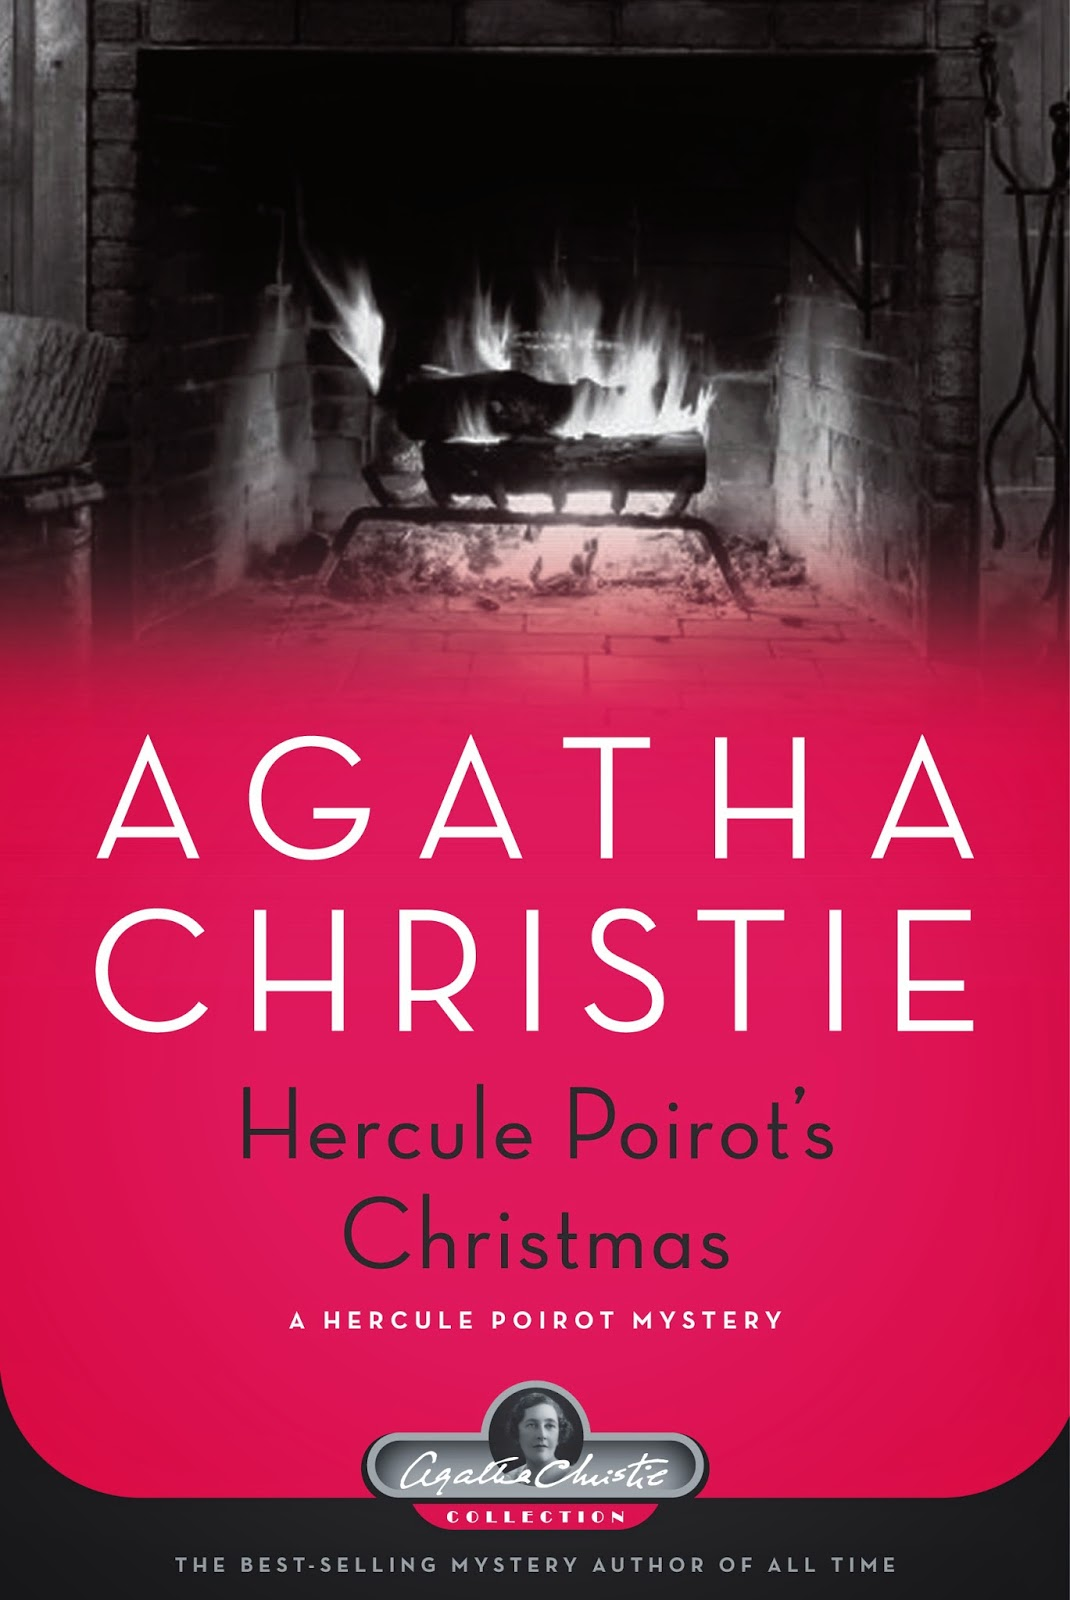 a summary of hercule poirots christmas a novel by agatha christie Hercule poirot's christmas: a hercule poirot mystery and millions of other books  are available for amazon kindle learn more enter your  the amazon book  review  five little pigs: a hercule poirot mystery (agatha christie collection)  .